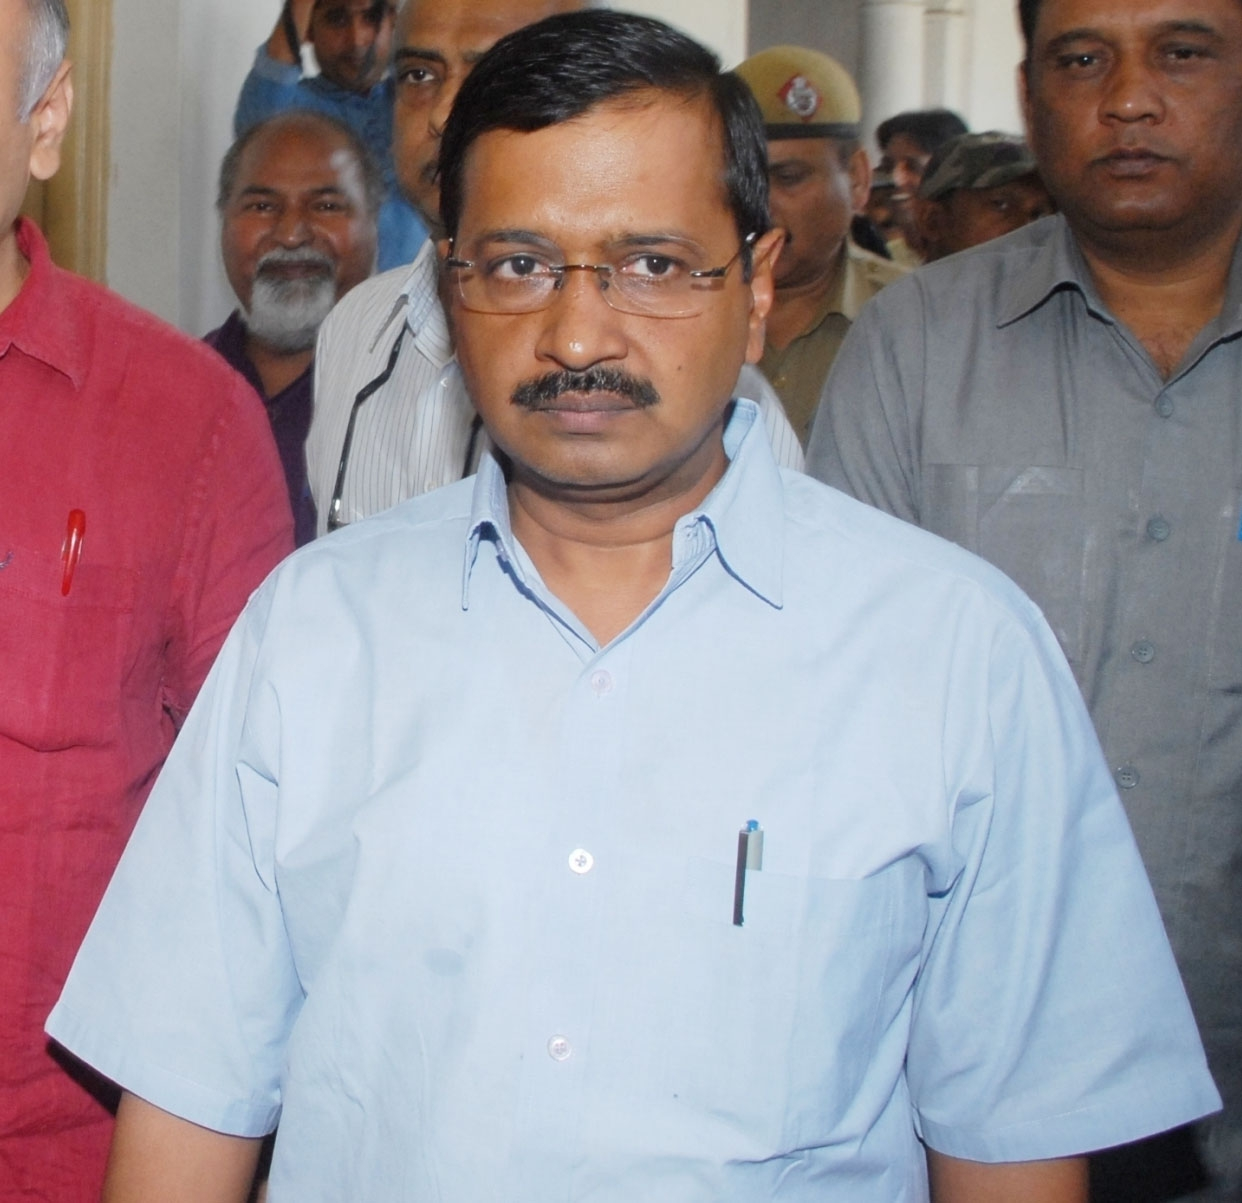 Delhi Chief Minister Arvind Kejriwal. (File Photo: IANS) by .